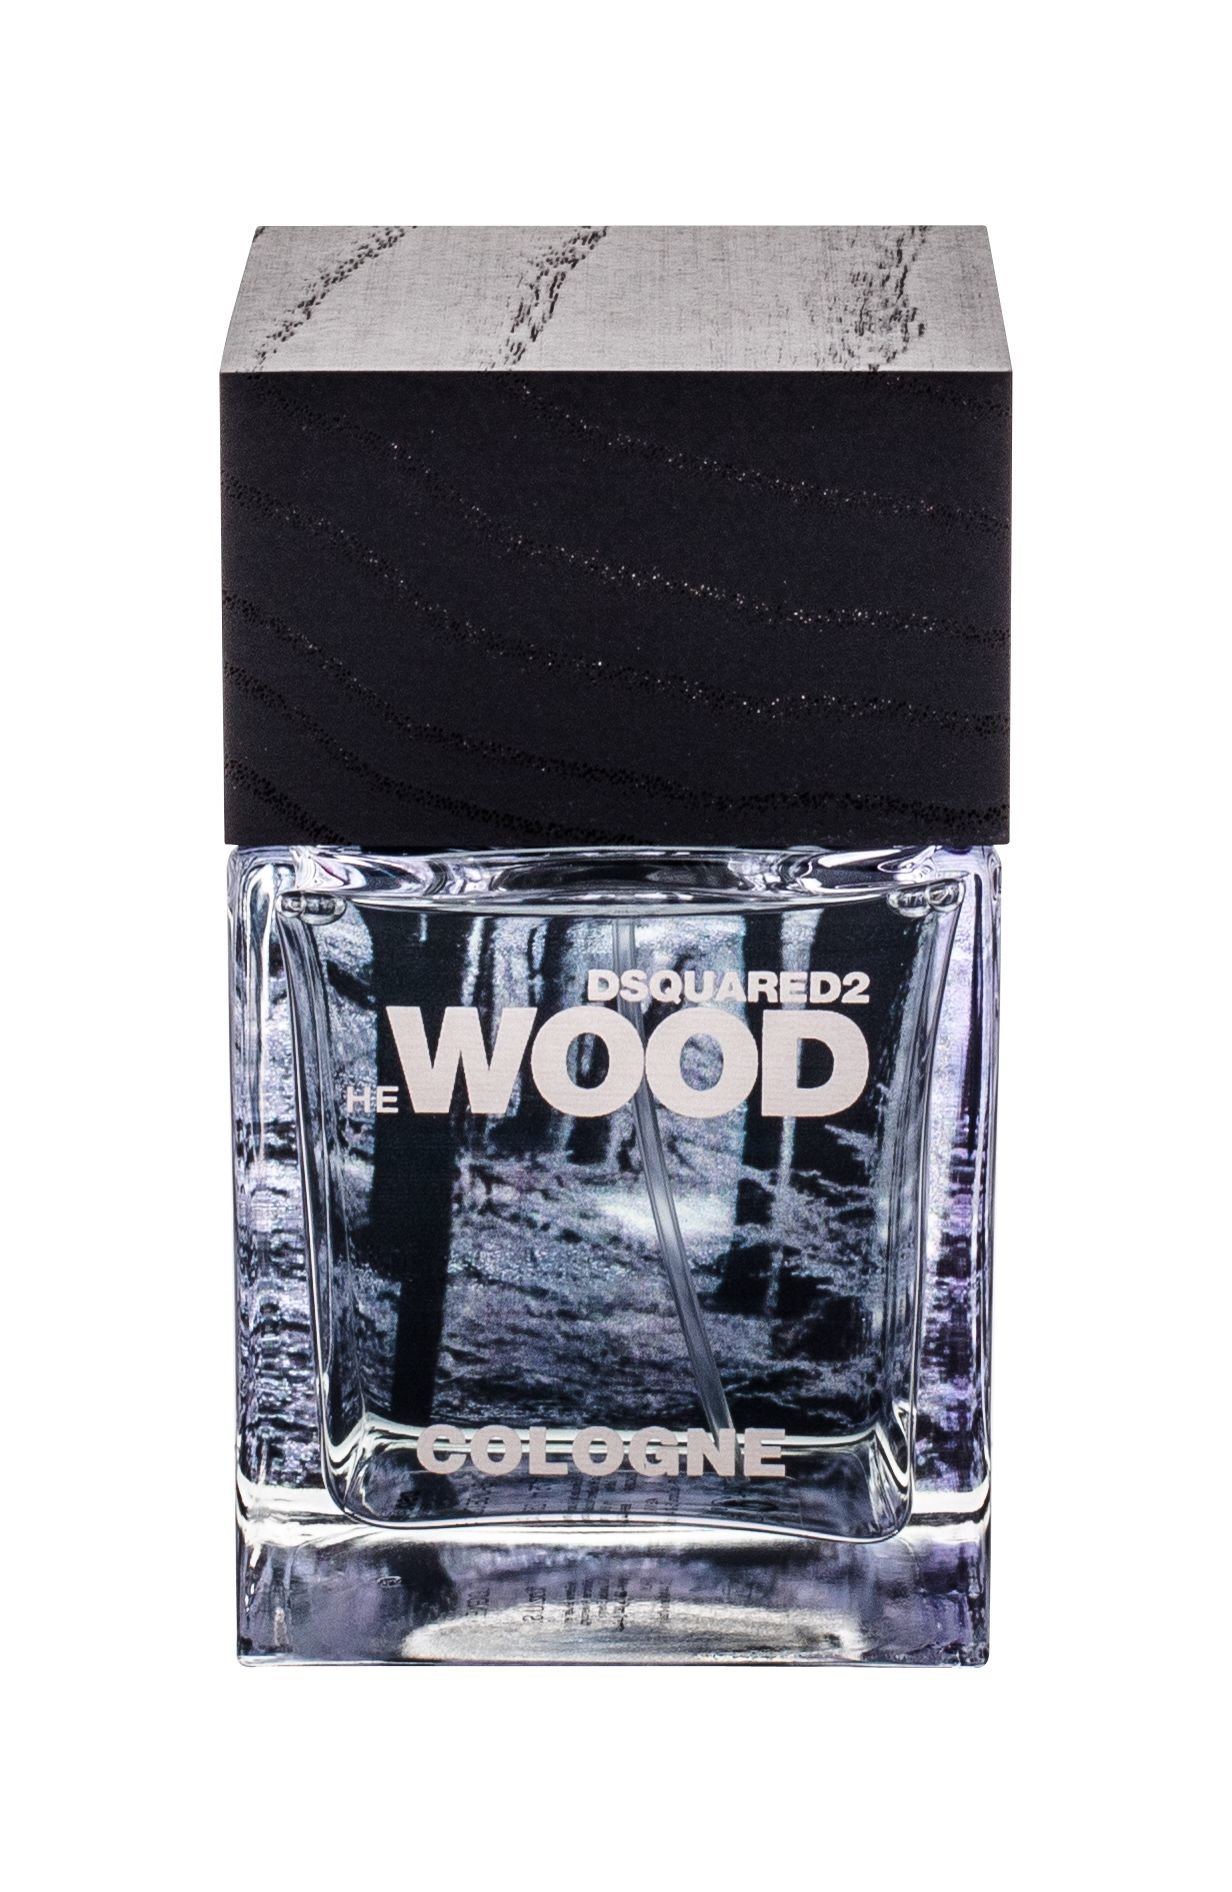 Dsquared2 He Wood Cologne Cologne 75ml